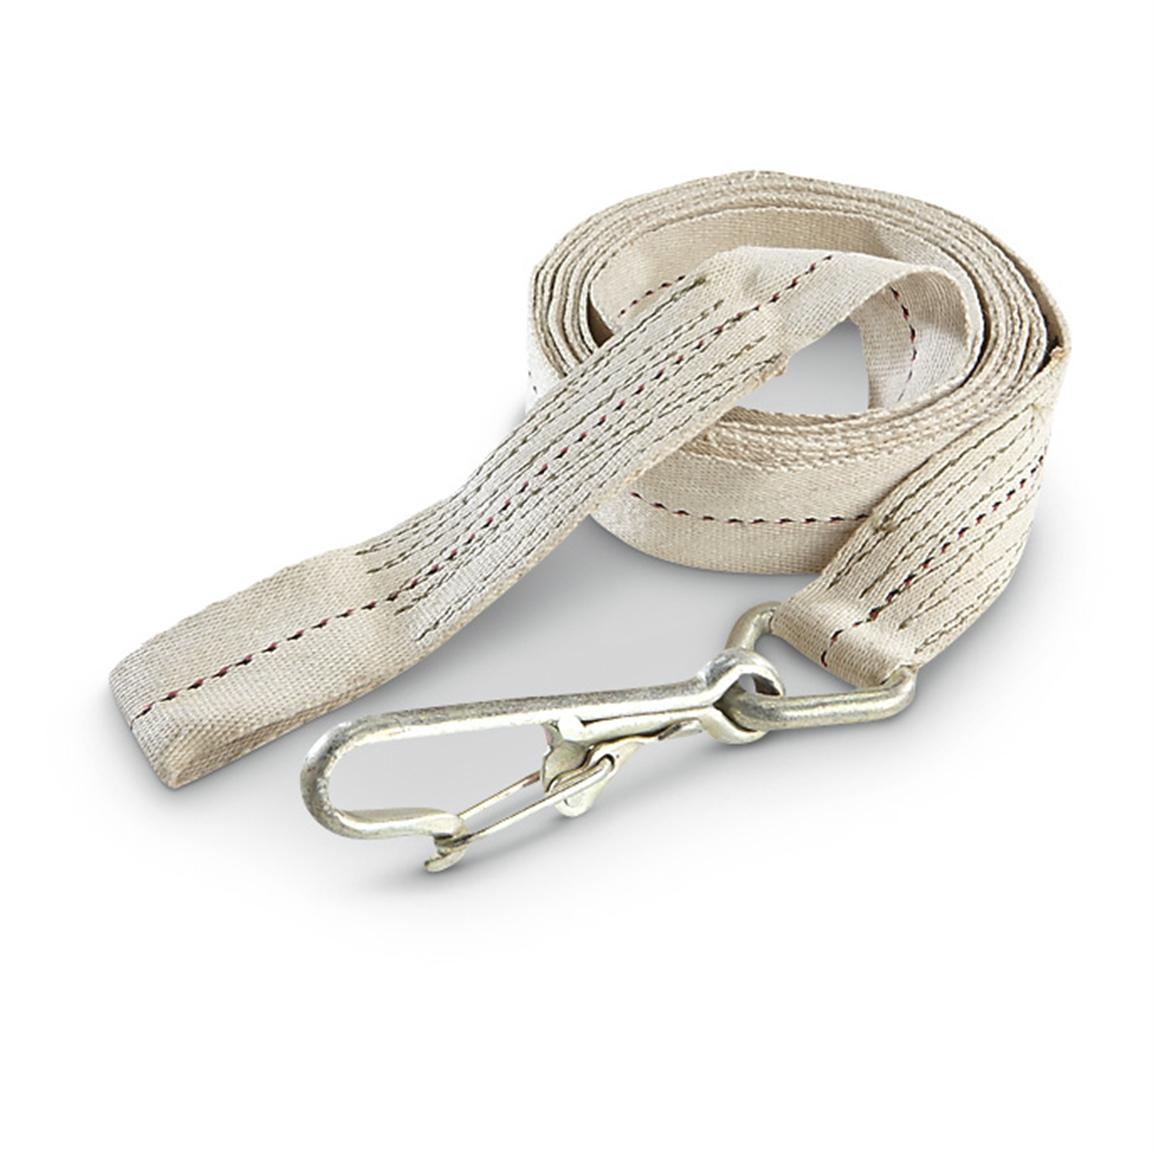 New Belgian Military Surplus 2 inch x 22 foot Tow Strap with Metal Hook